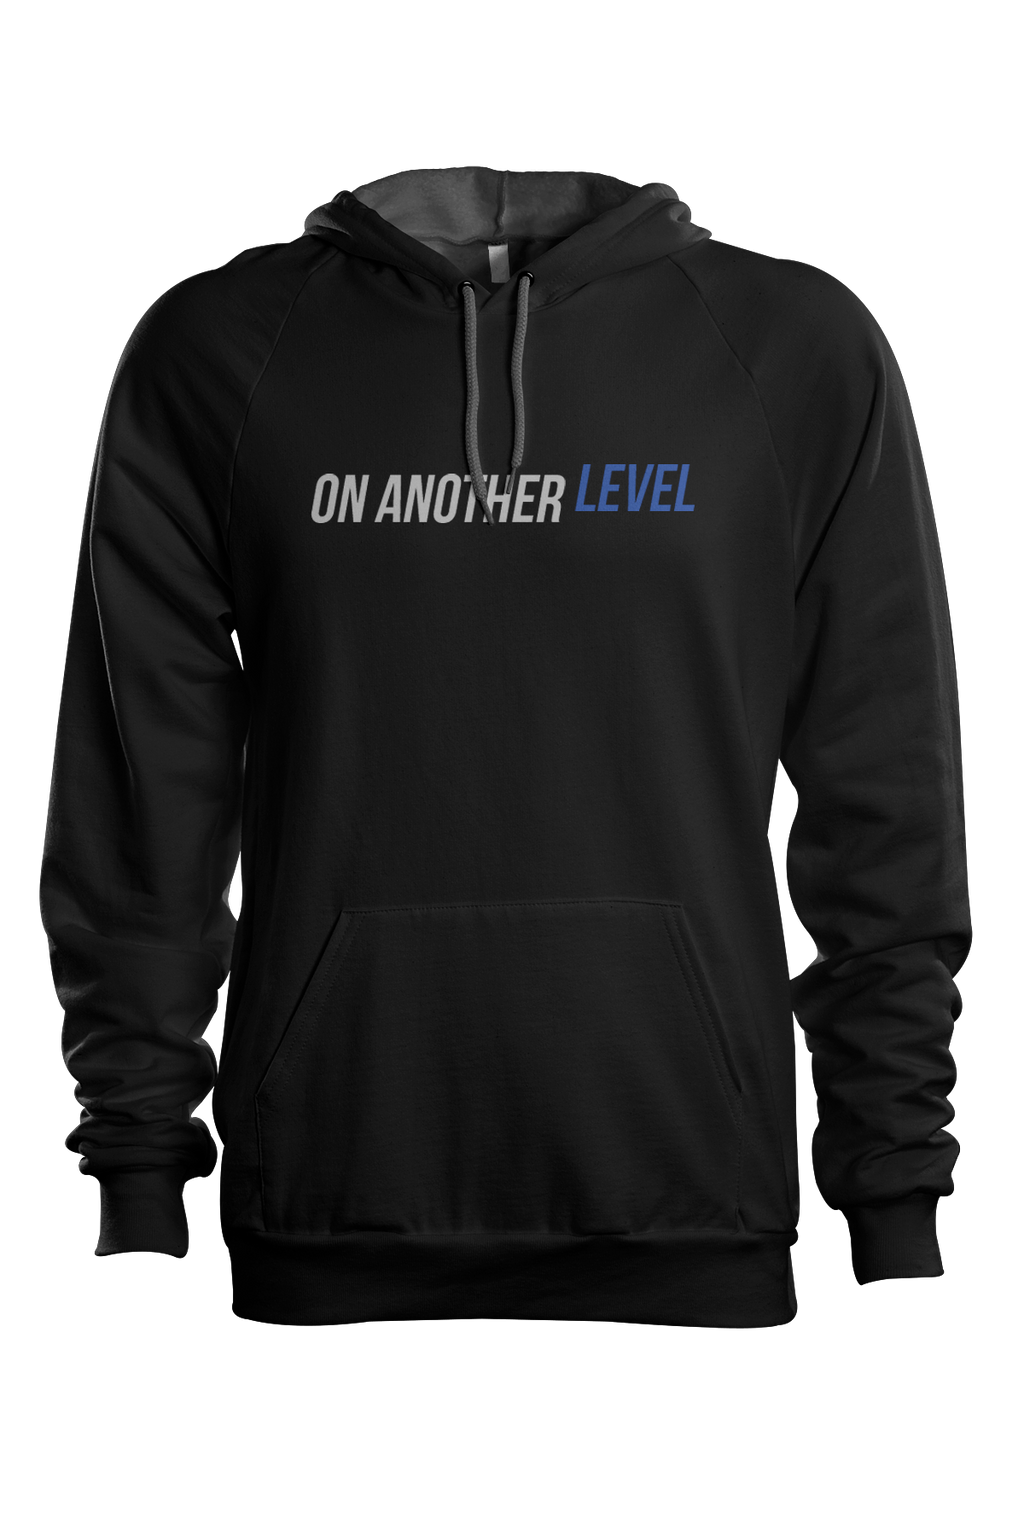 On Another Level Text Hoodie